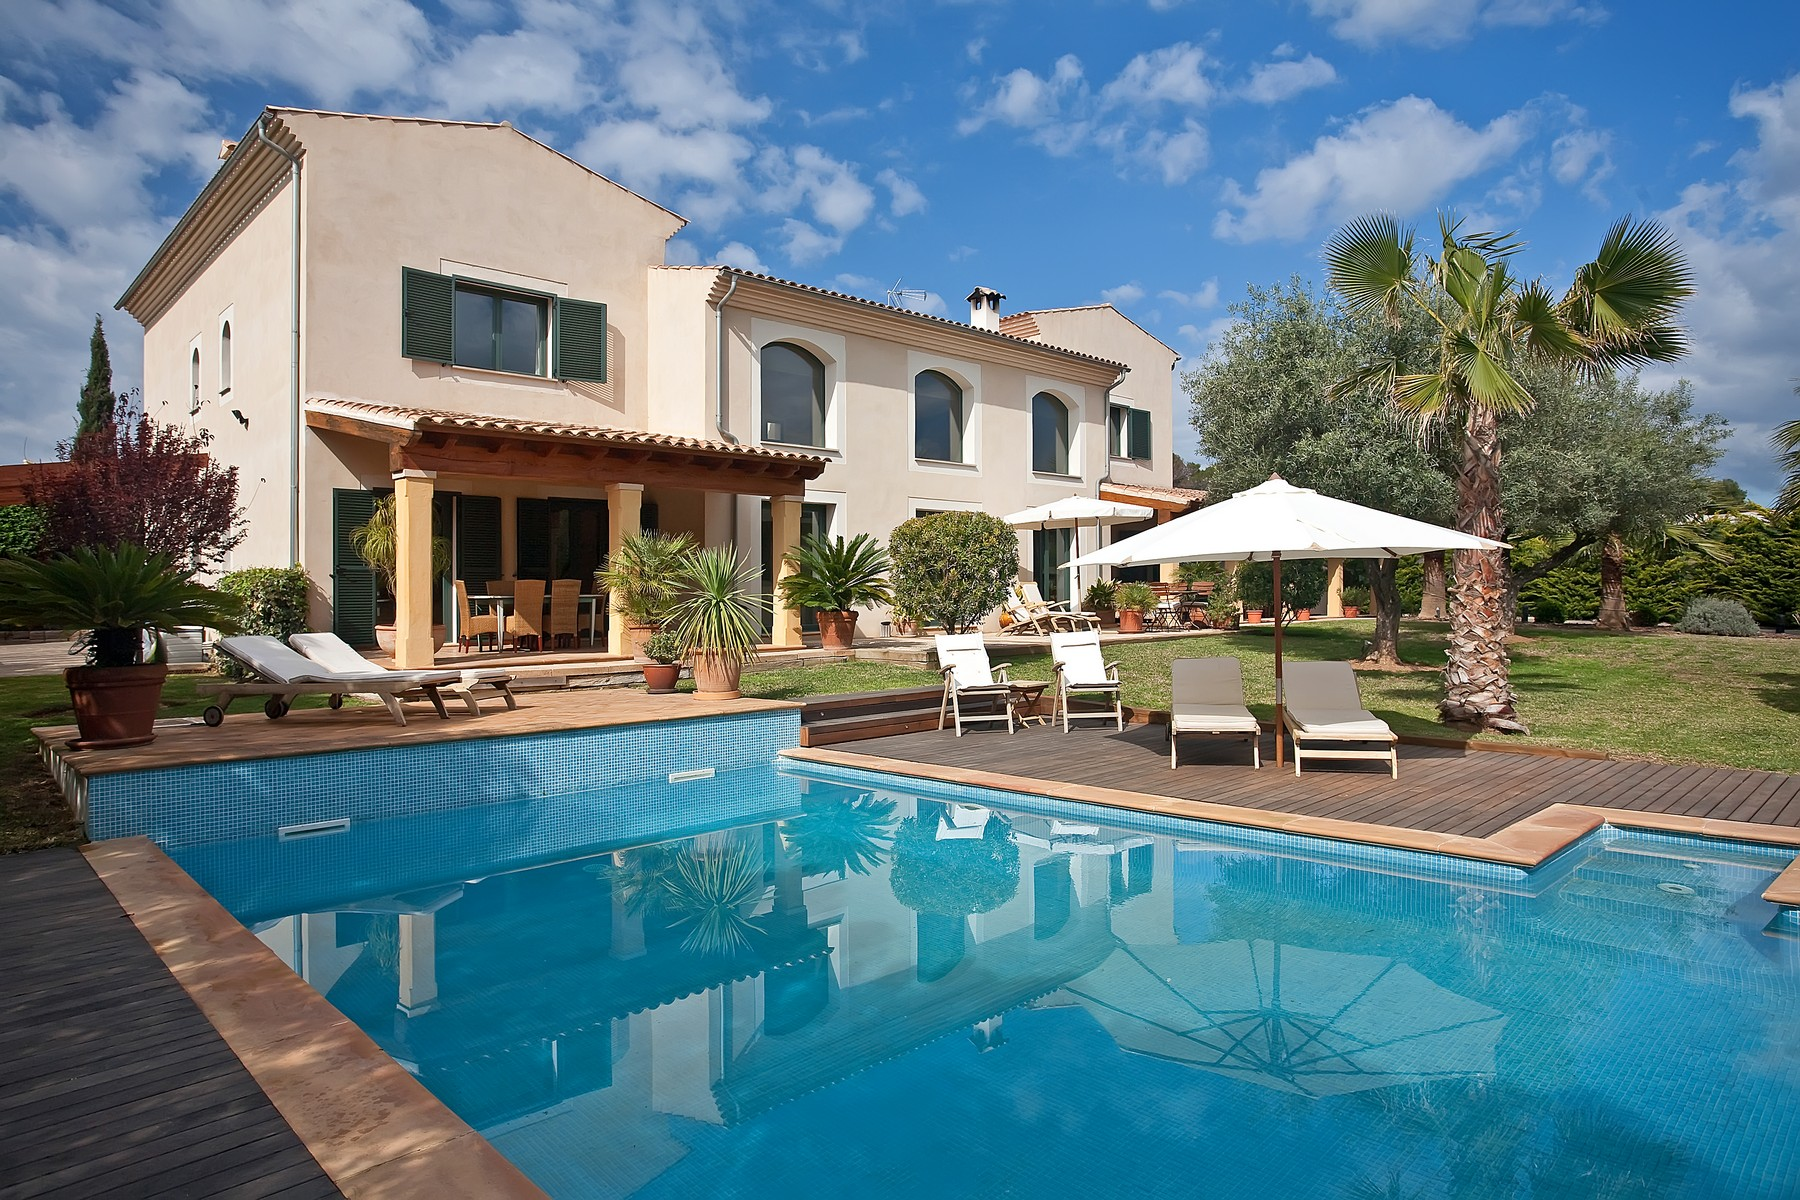 Single Family Home for Sale at Sunny luxurious villa in Sol de Mallorca Sol De Mallorca, Mallorca 07181 Spain